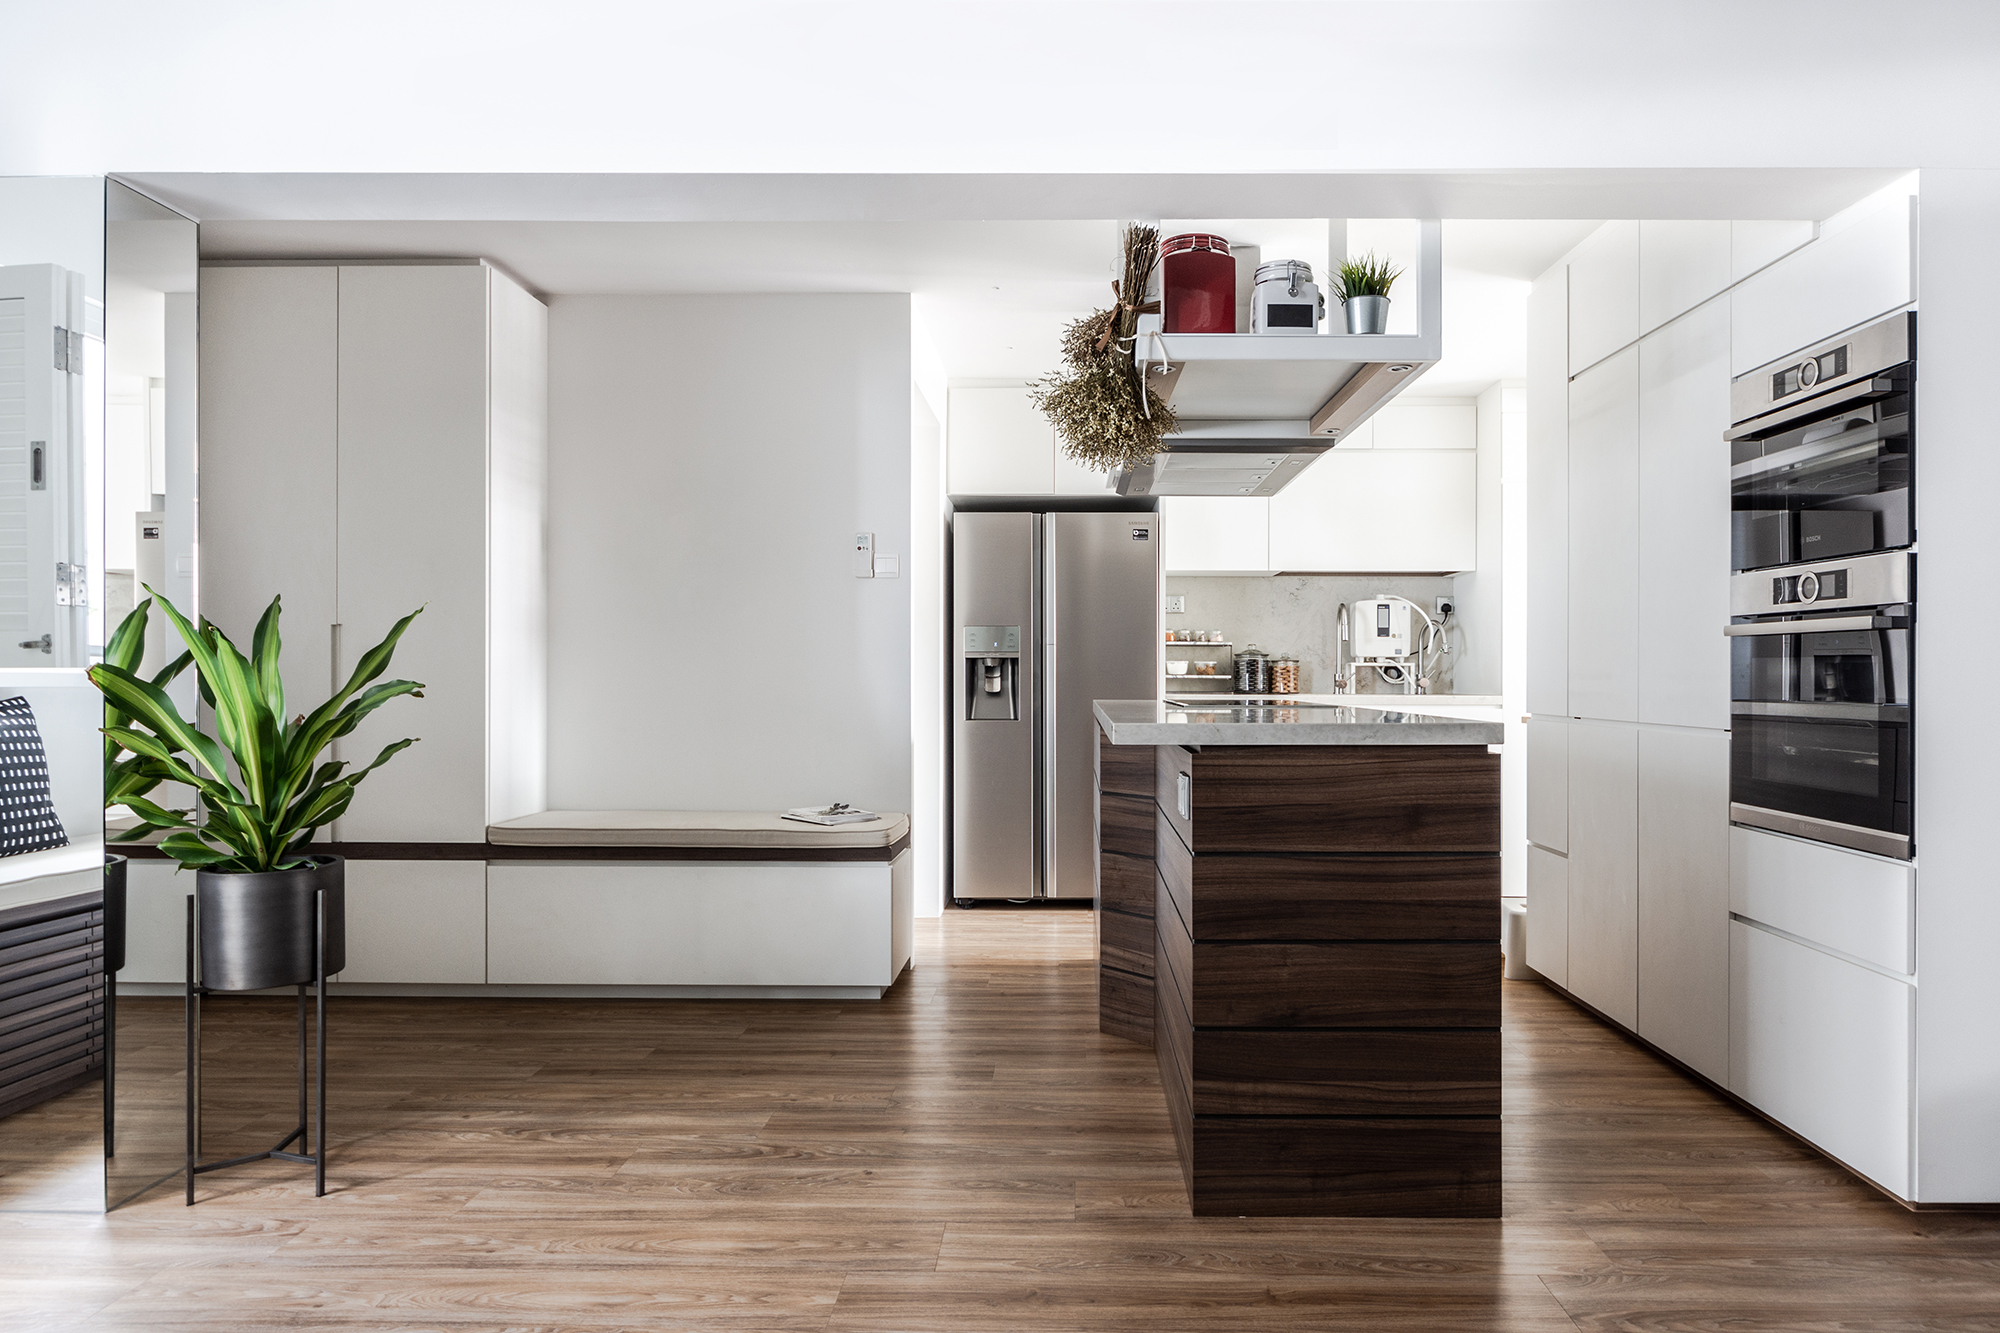 squarerooms-distinct-identity-kitchen-open-wooden-island-plant